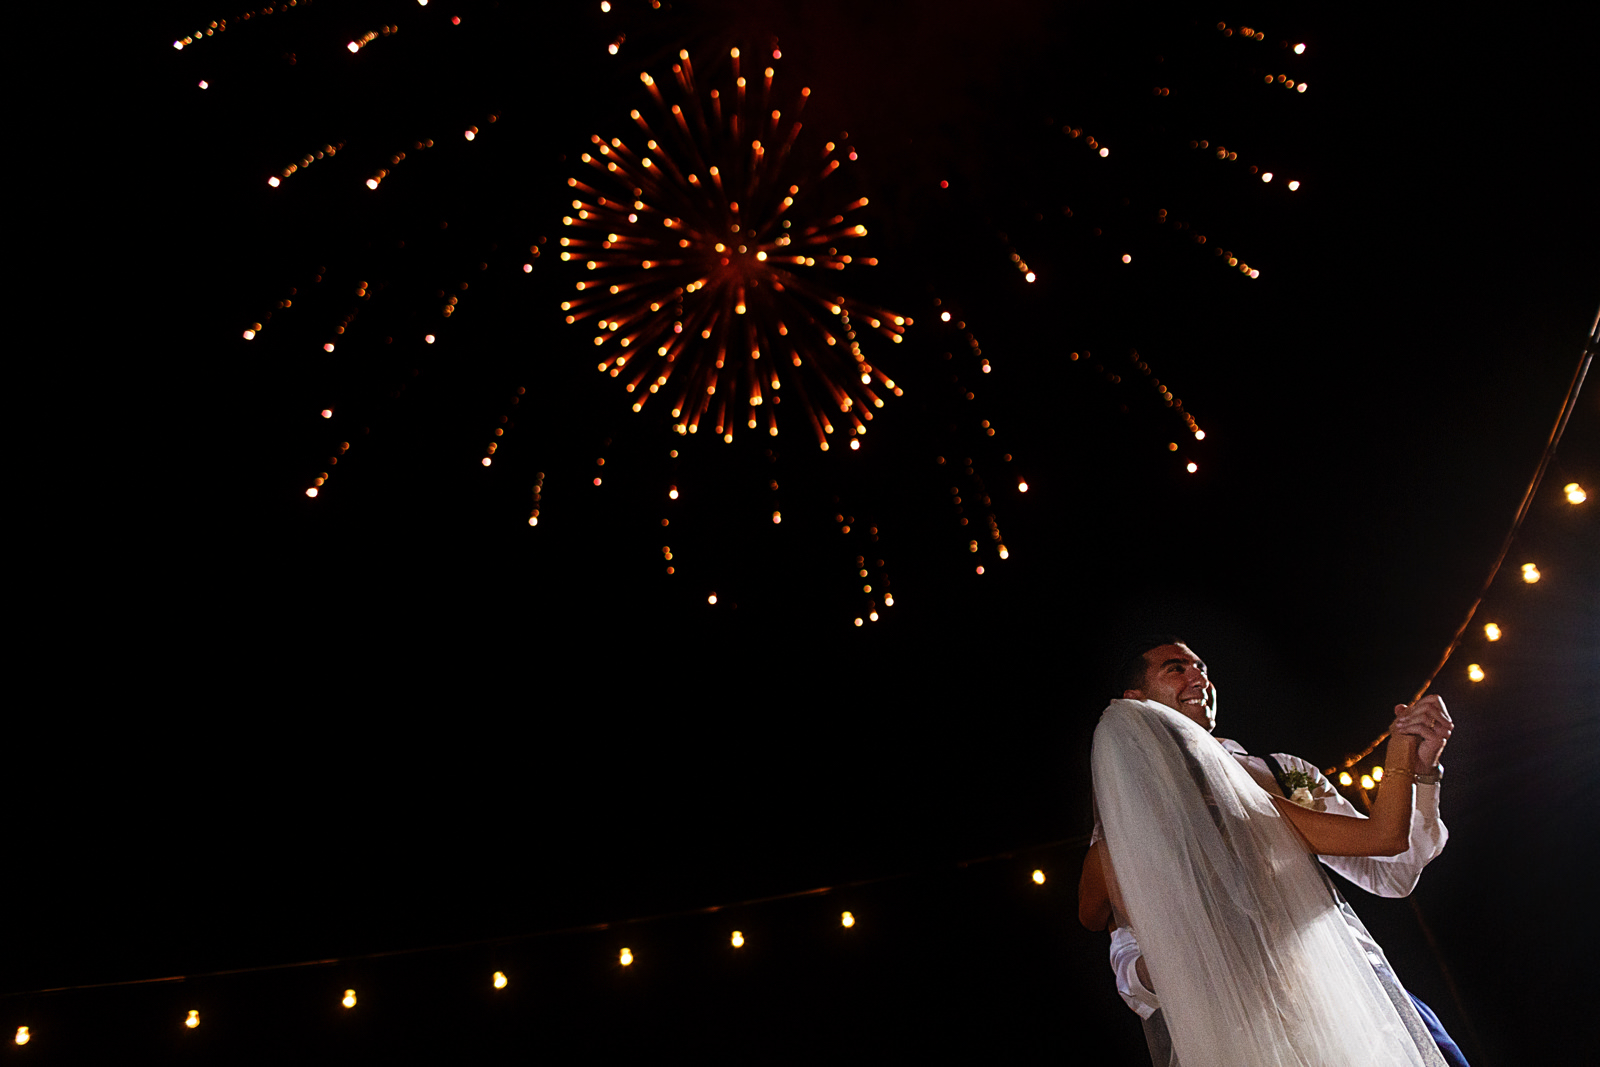 Fireworks explodng above the groom and bride on their first dance